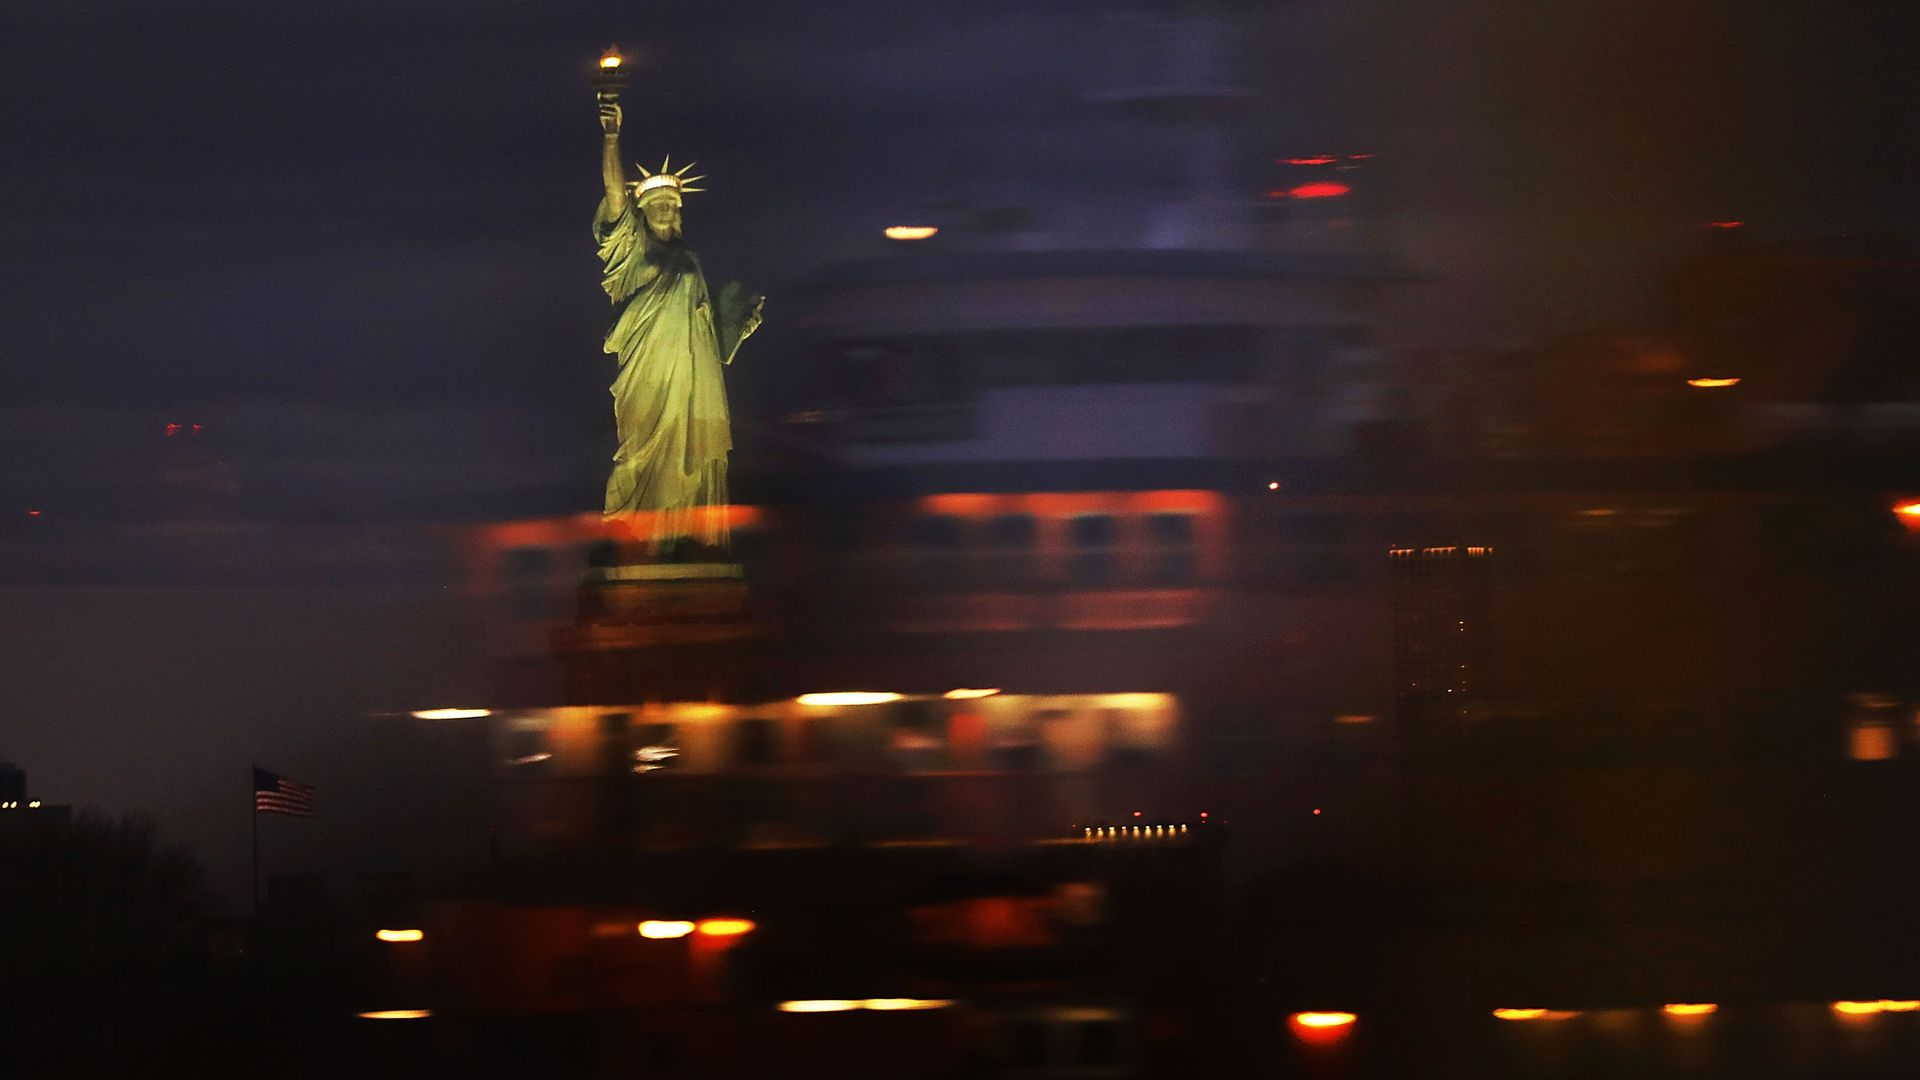 The Statue of Liberty seen through a blur of moving cars and lights